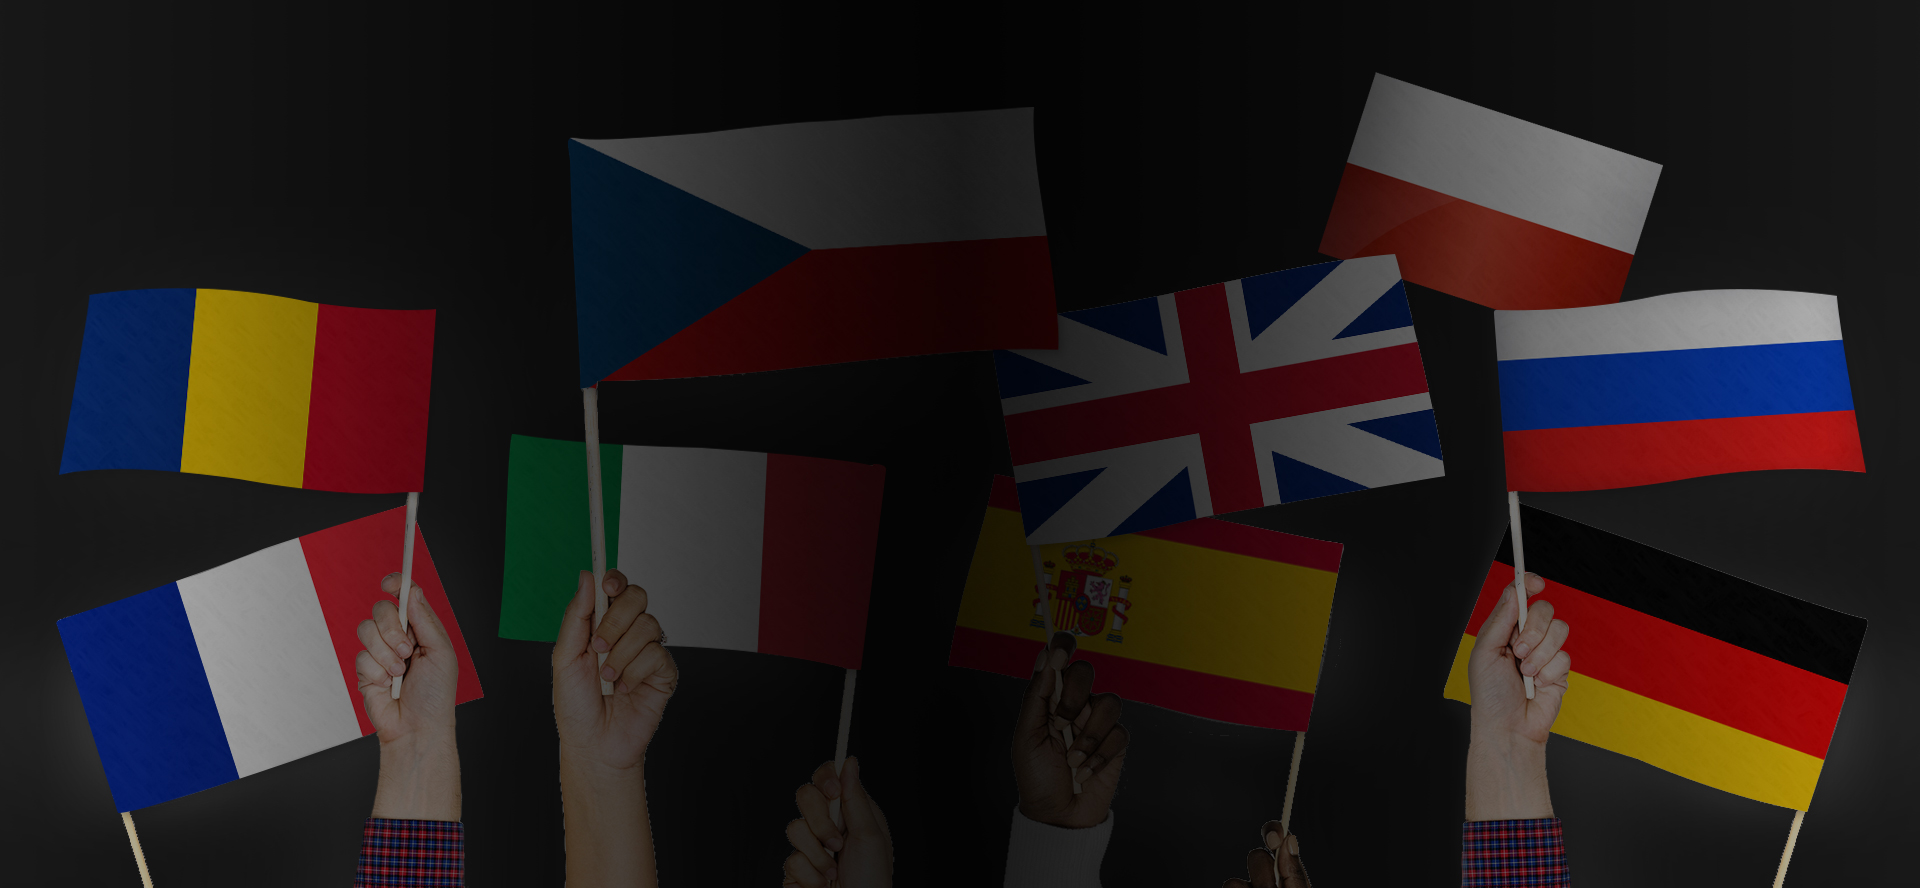 Legal services in nine languages